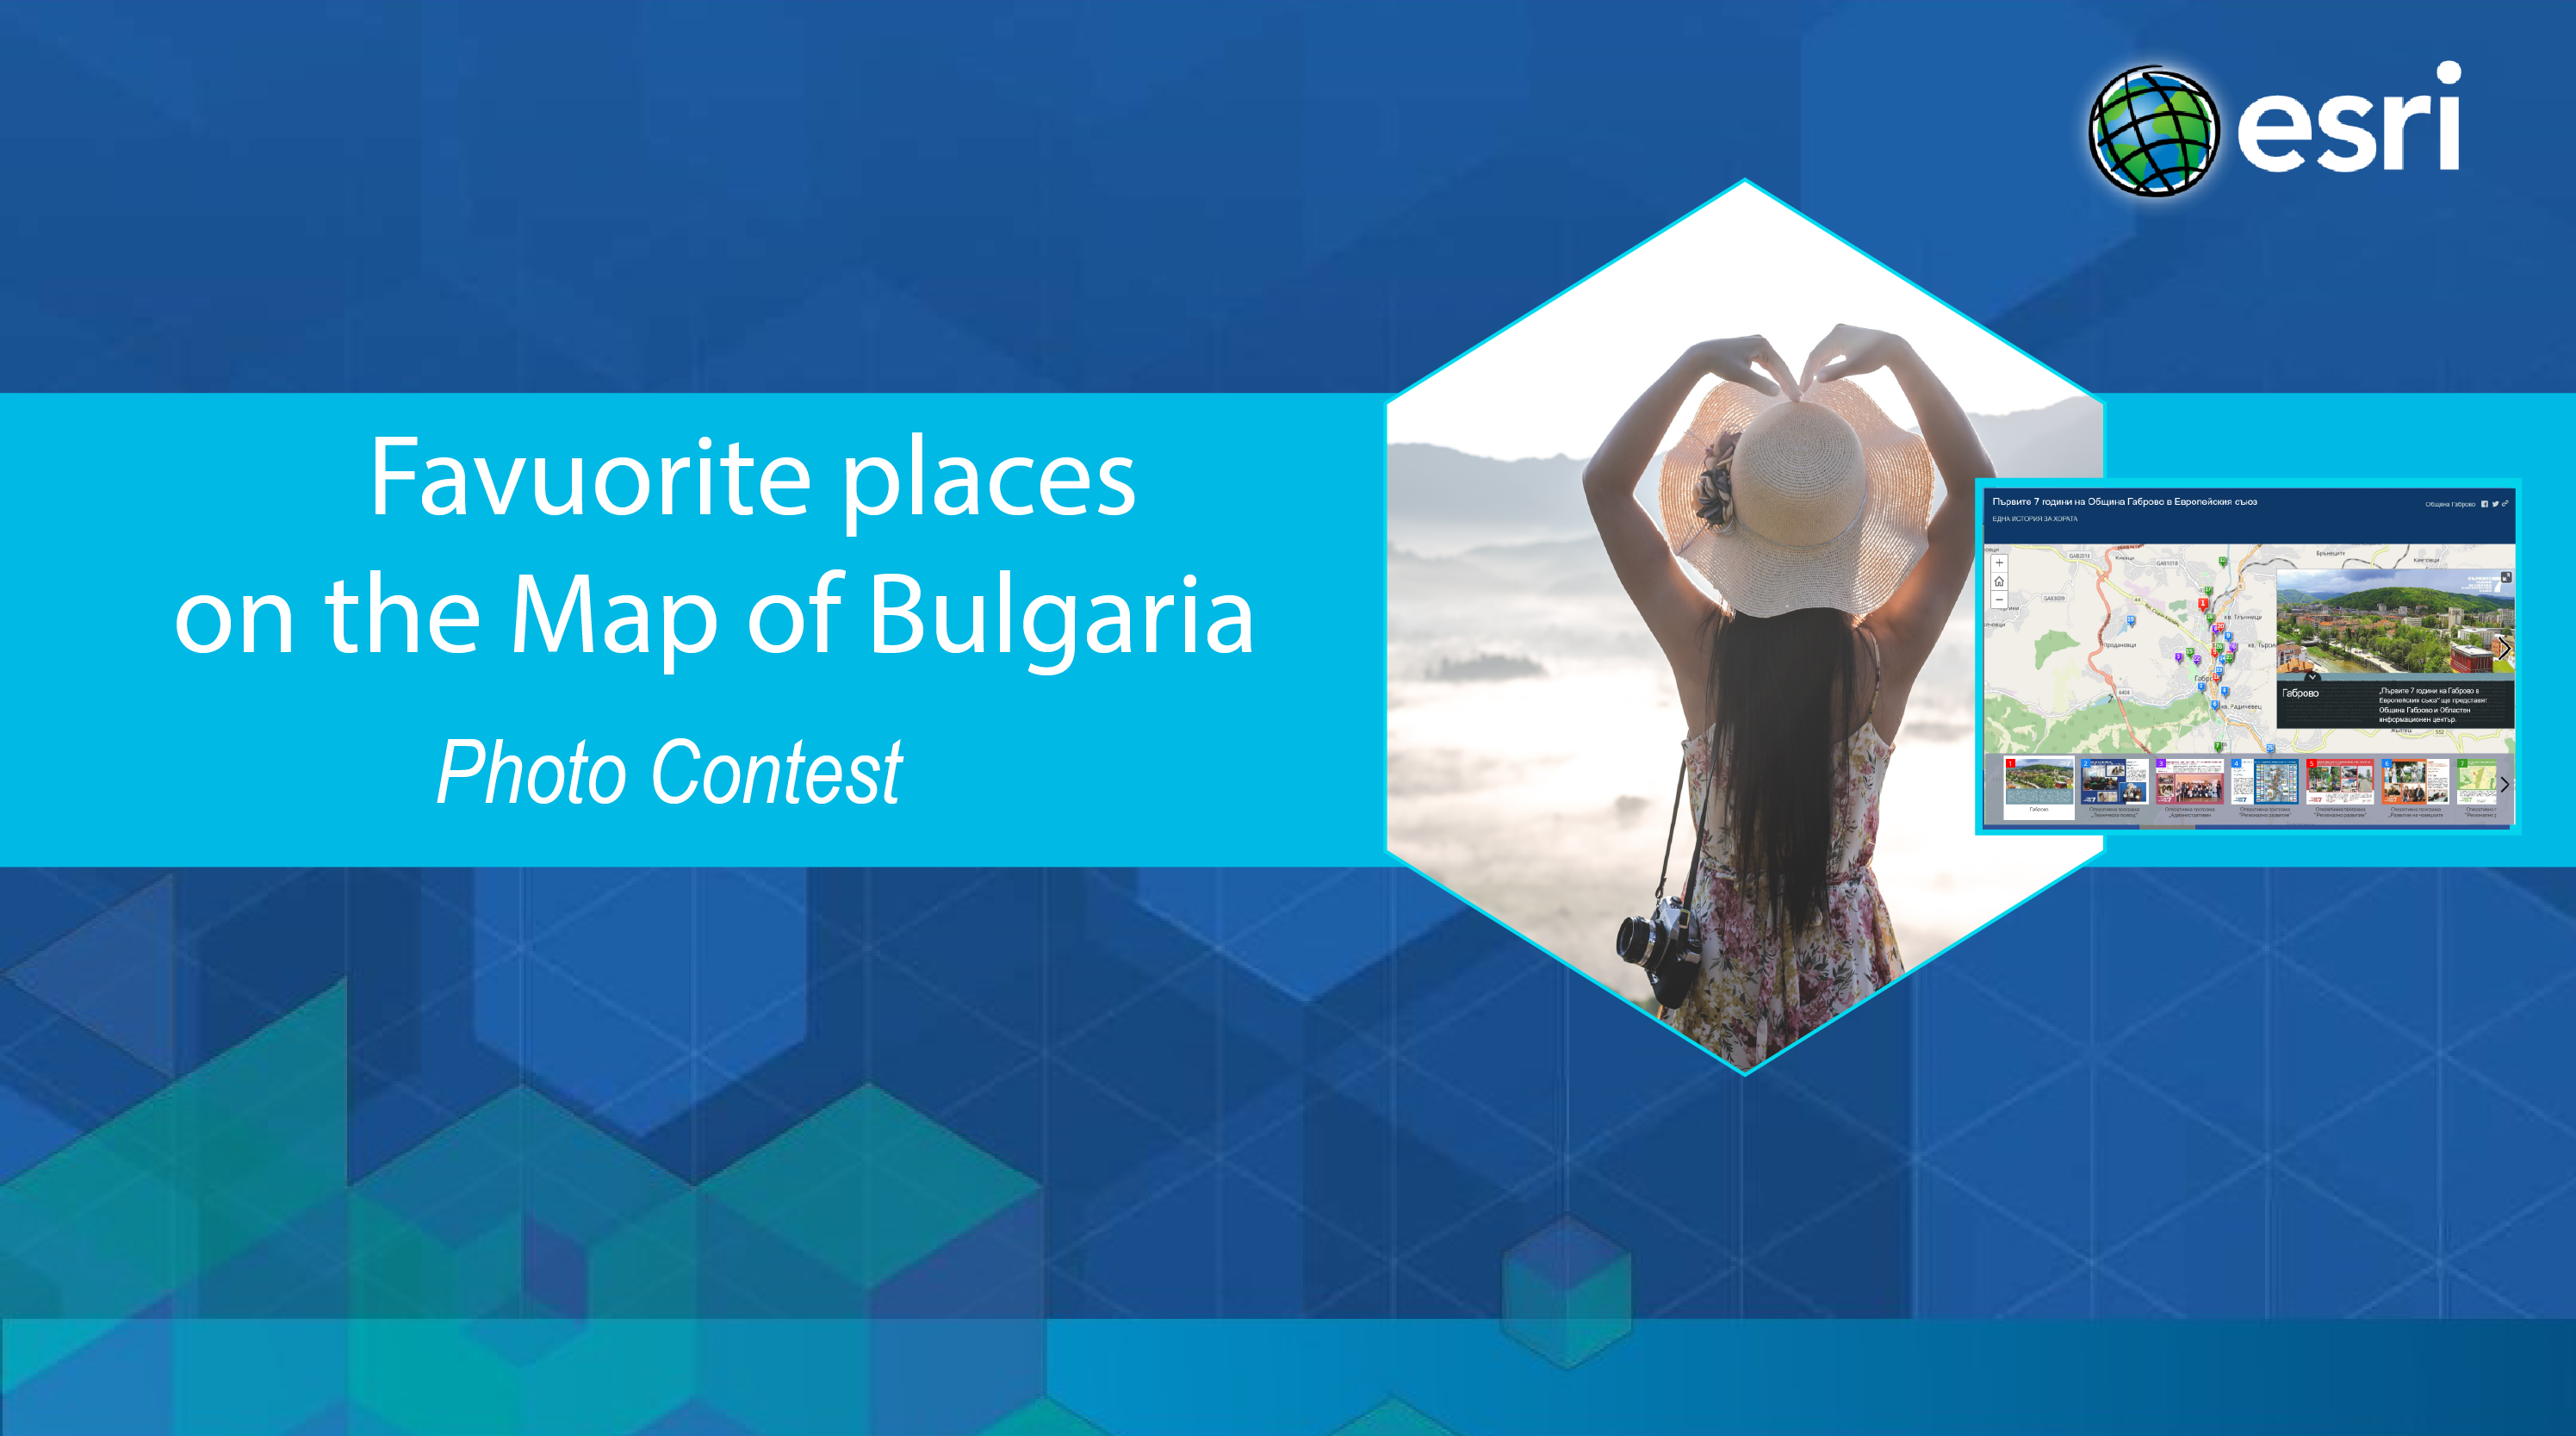 photo contest on a map